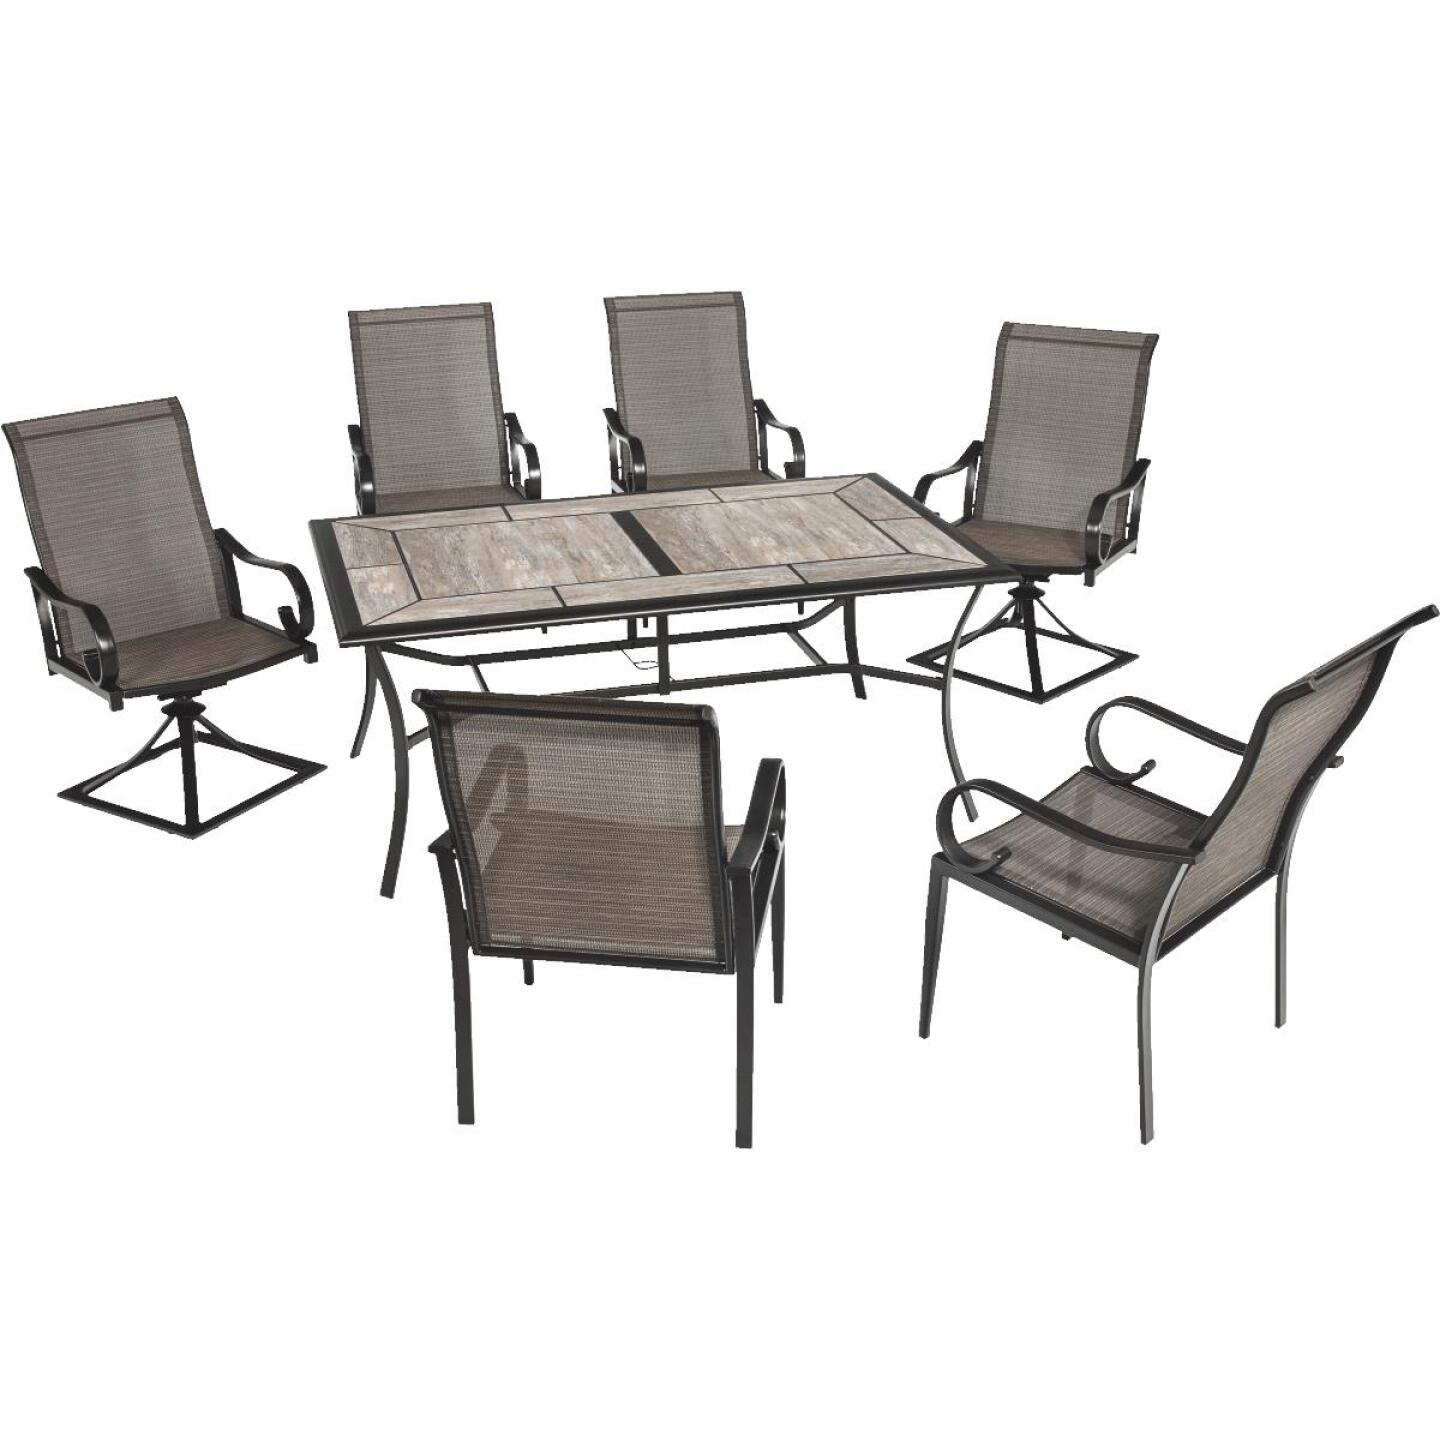 Outdoor Expressions Berkshire 7-Piece Dining Set Image 15